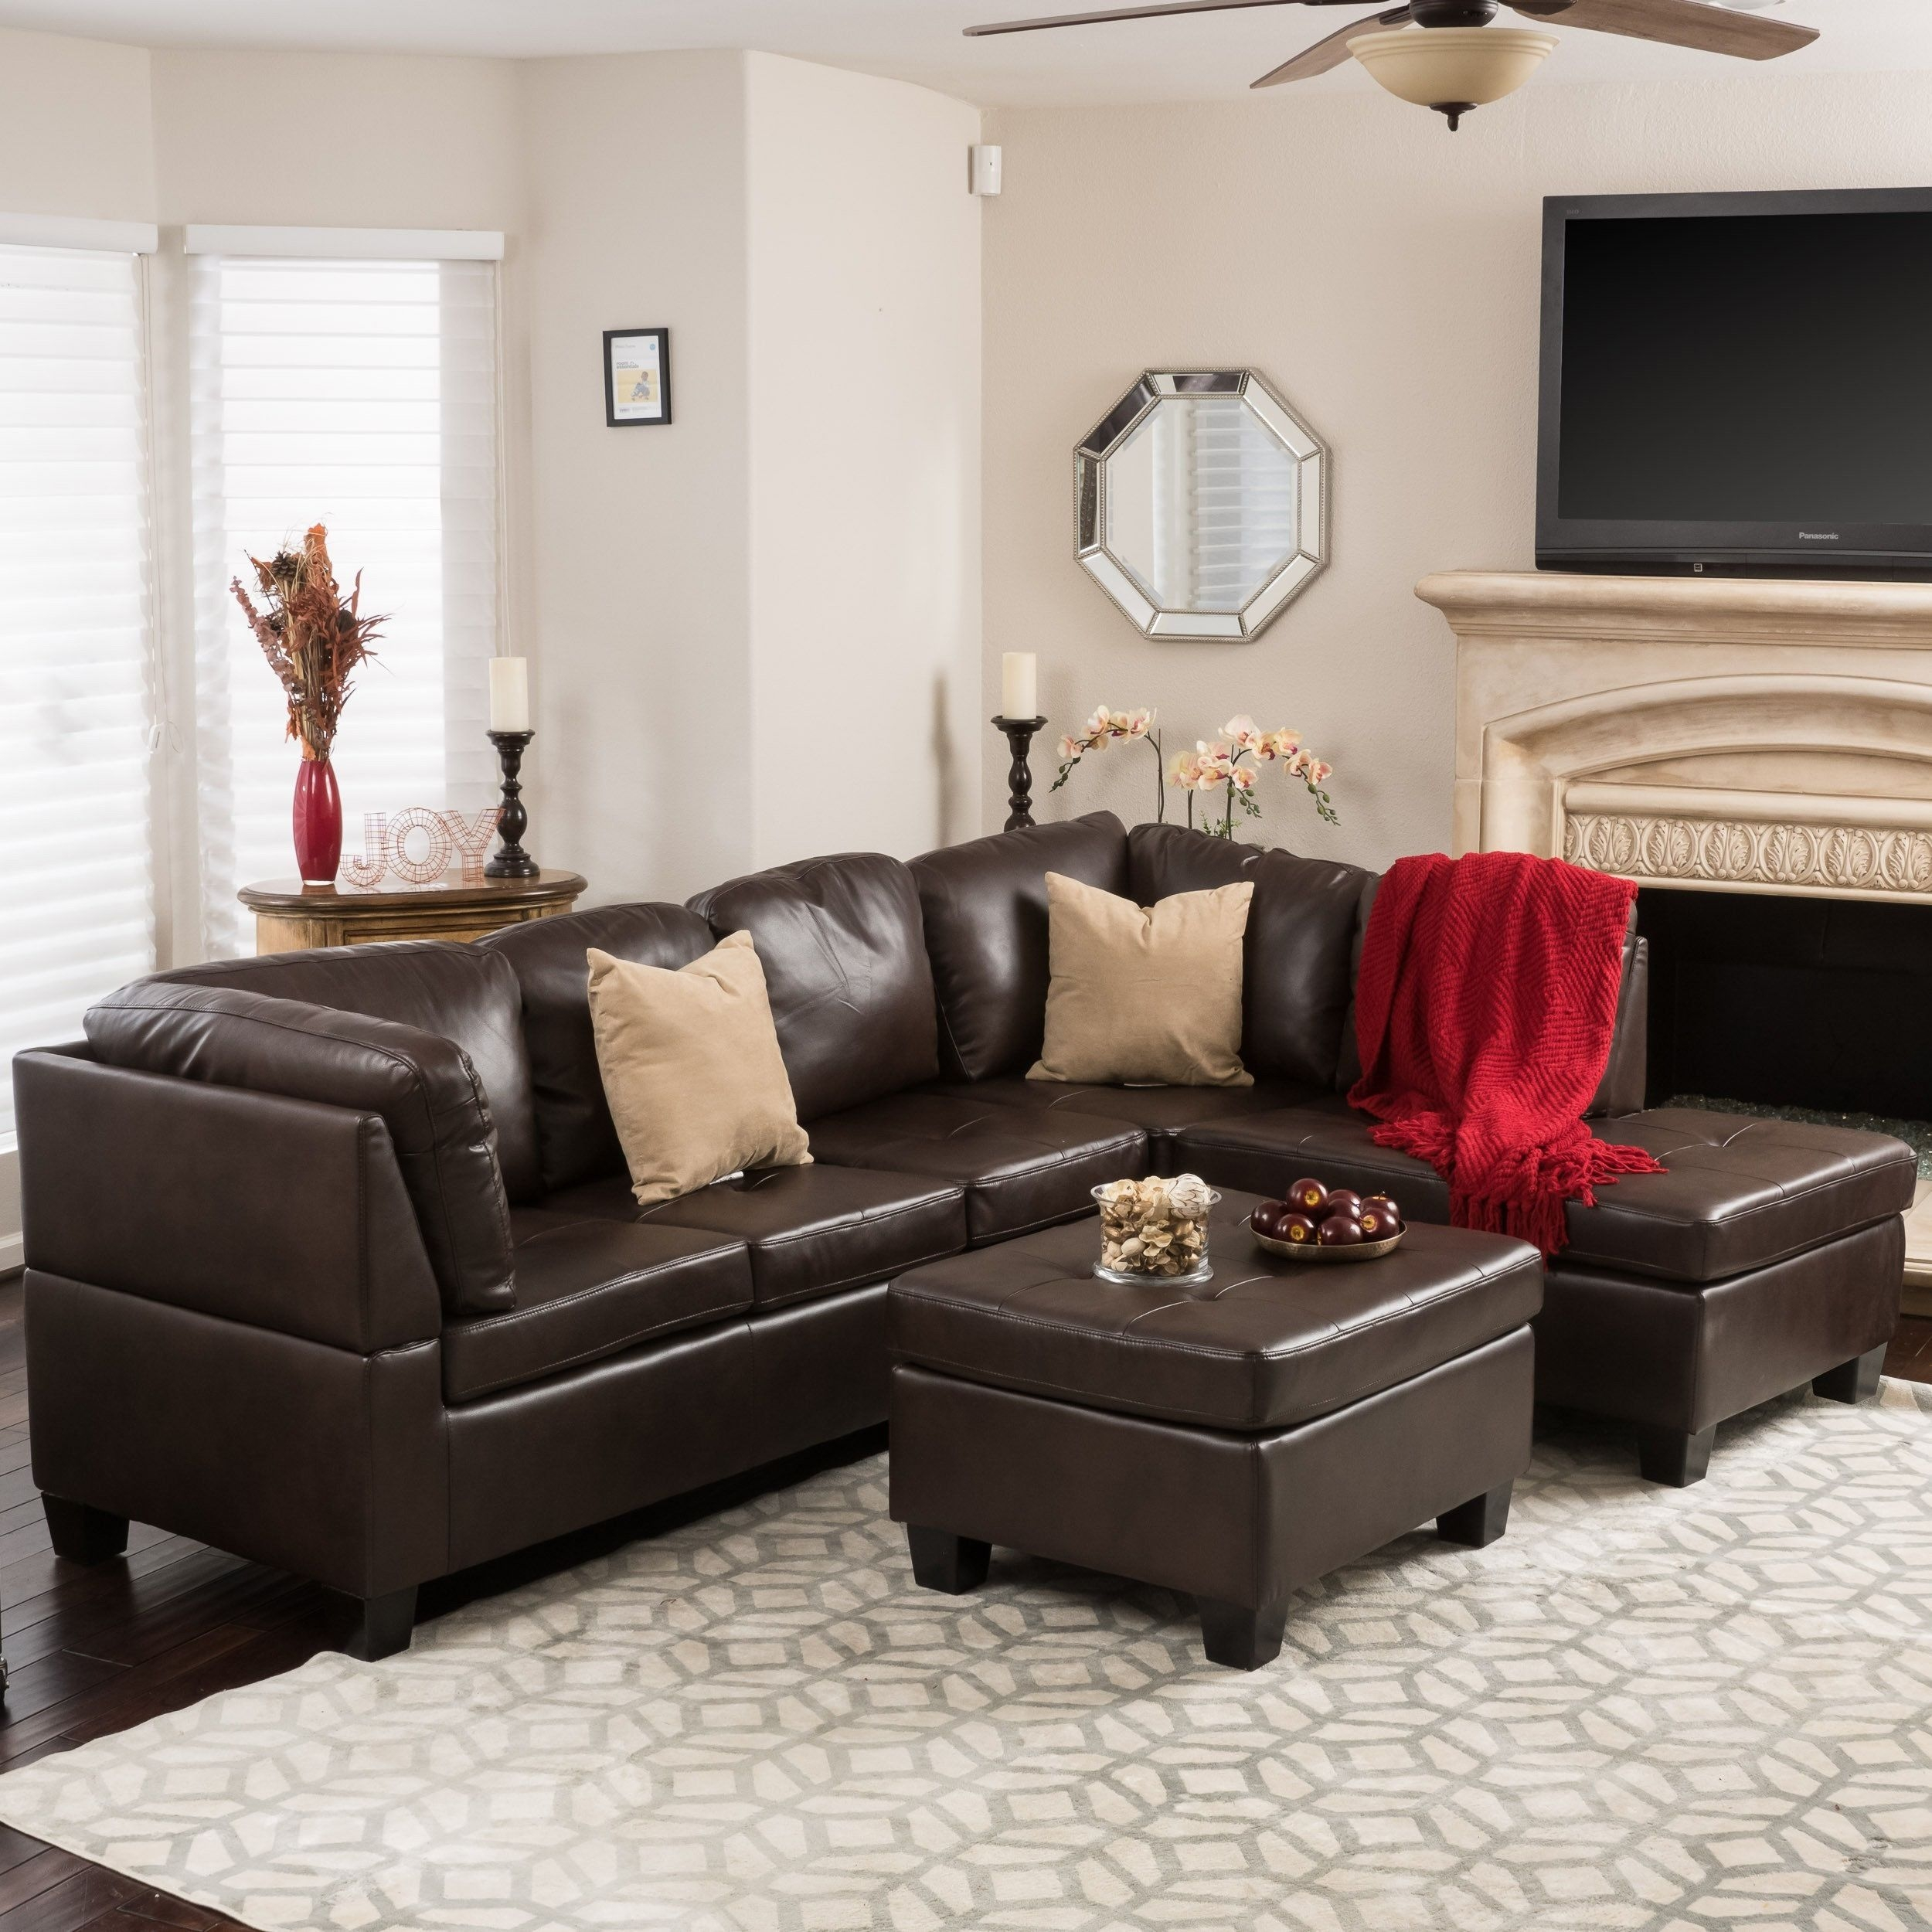 Canterbury 3 Piece Pu Leather Sectional Sofa Set Christopher Intended For Canterbury Leather Sofas (Image 4 of 15)